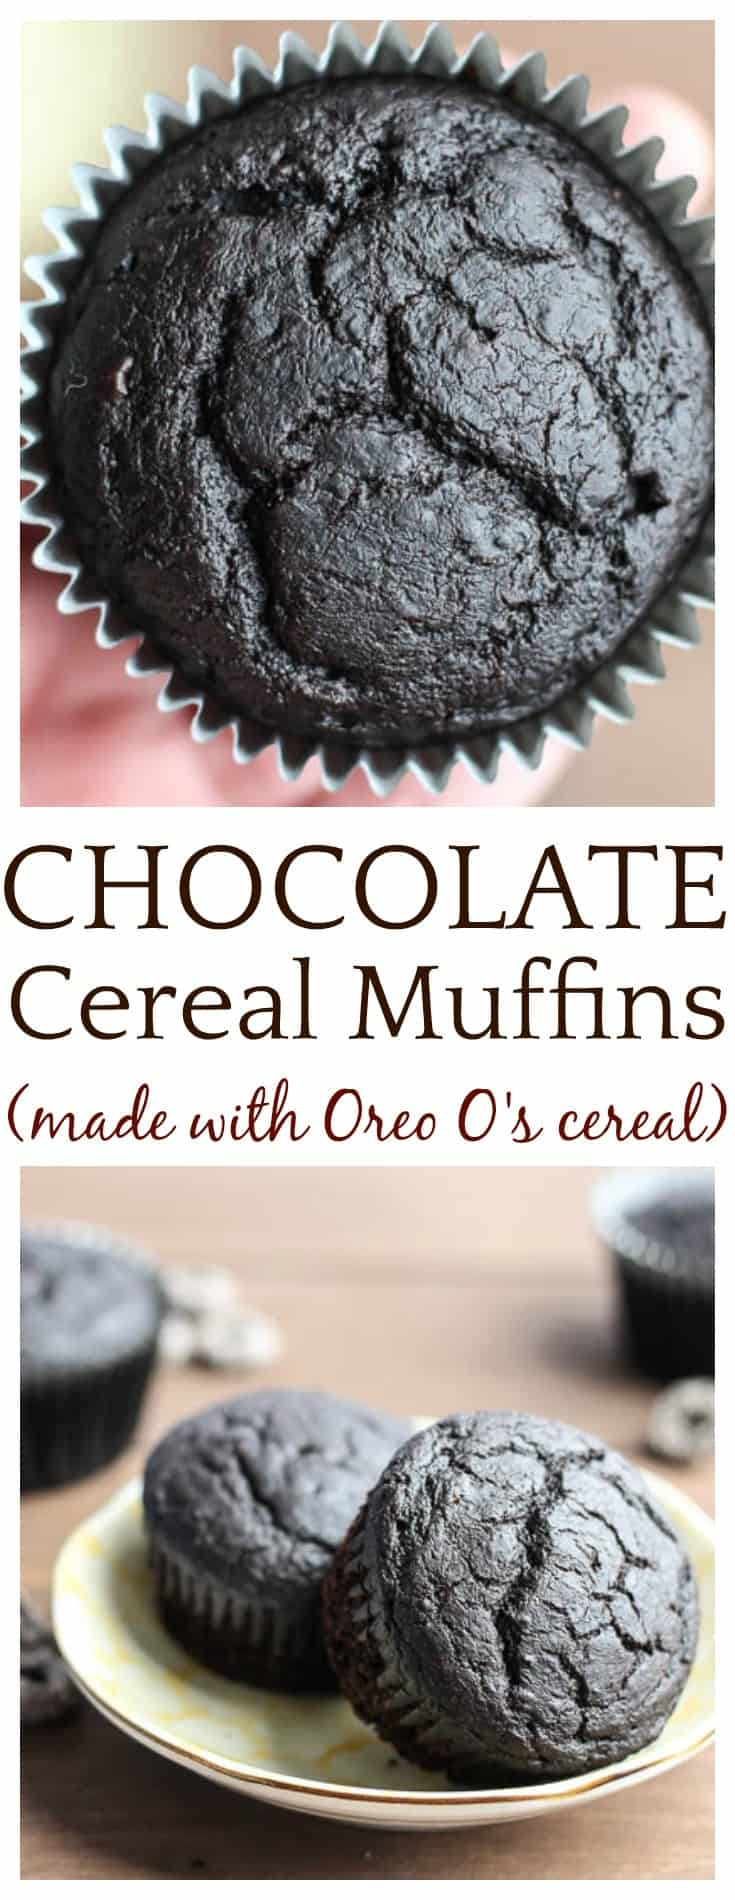 Oreo O's Chocolate Cereal Muffins are a delicious breakfast on-the-go or even a late night snack for the grown-ups! They are super rich as is, but you can add some cake icing and make them cupcakes as well!